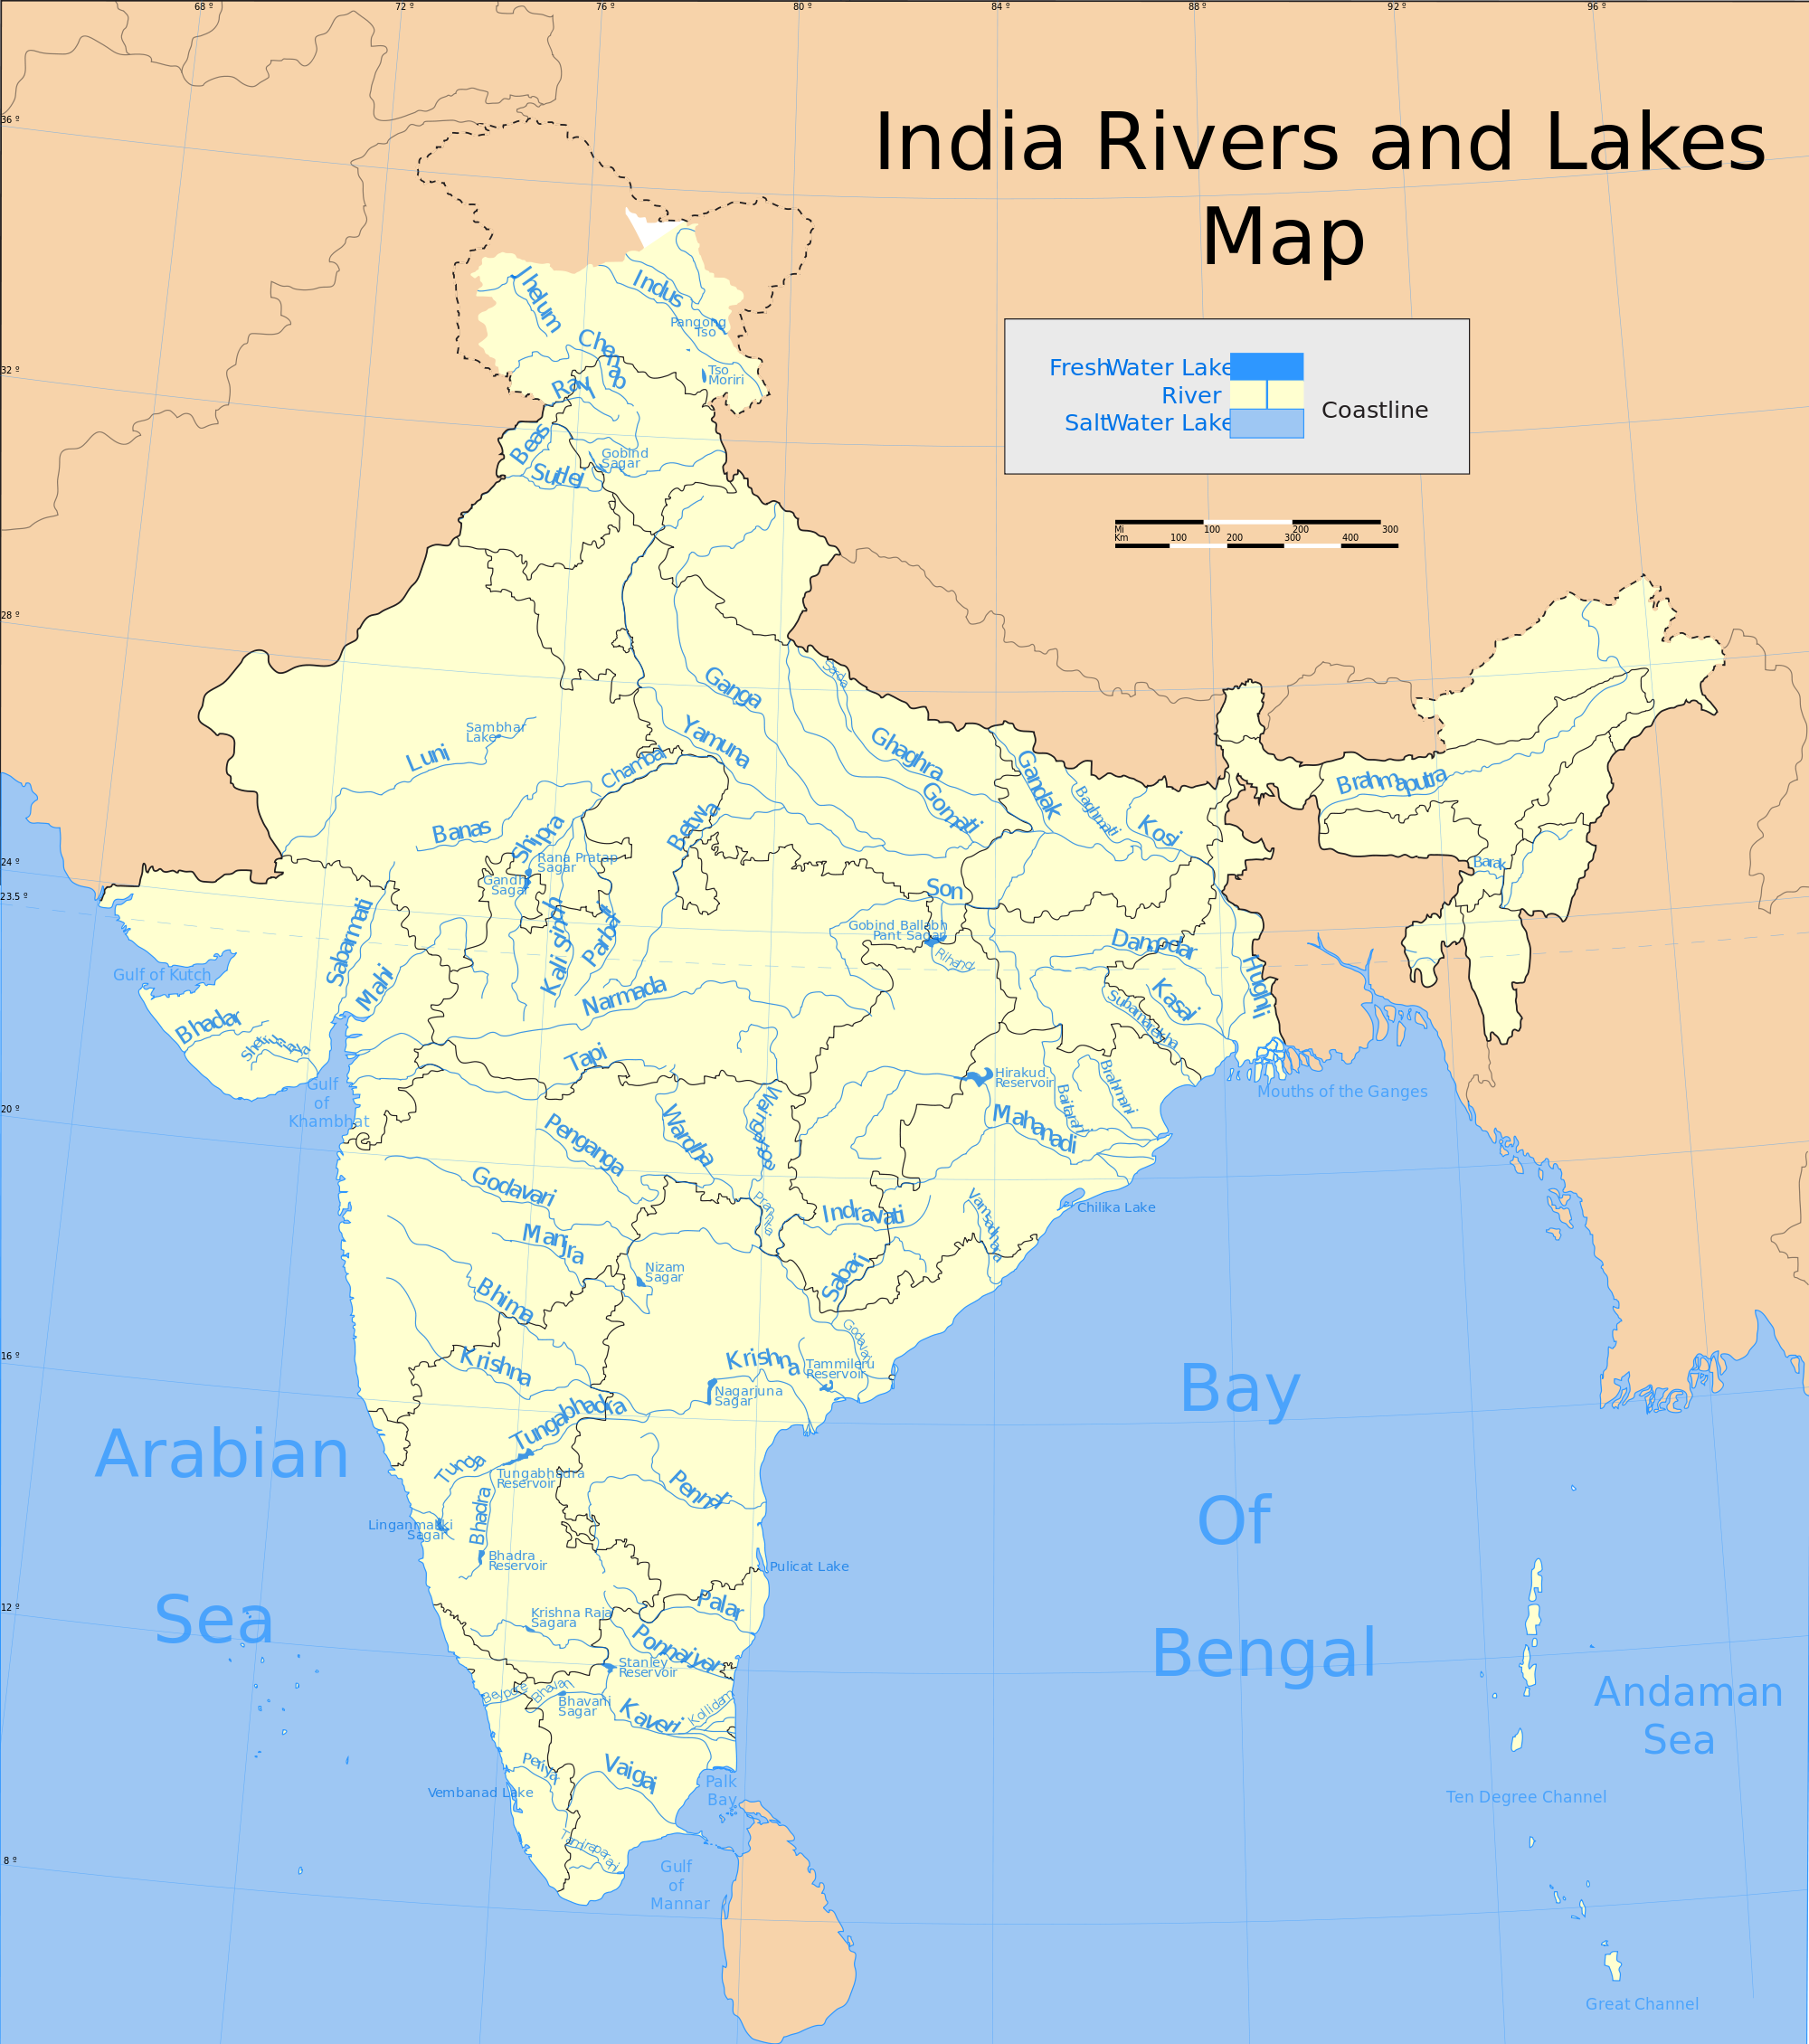 India-Rivers-and-Lakes-Map